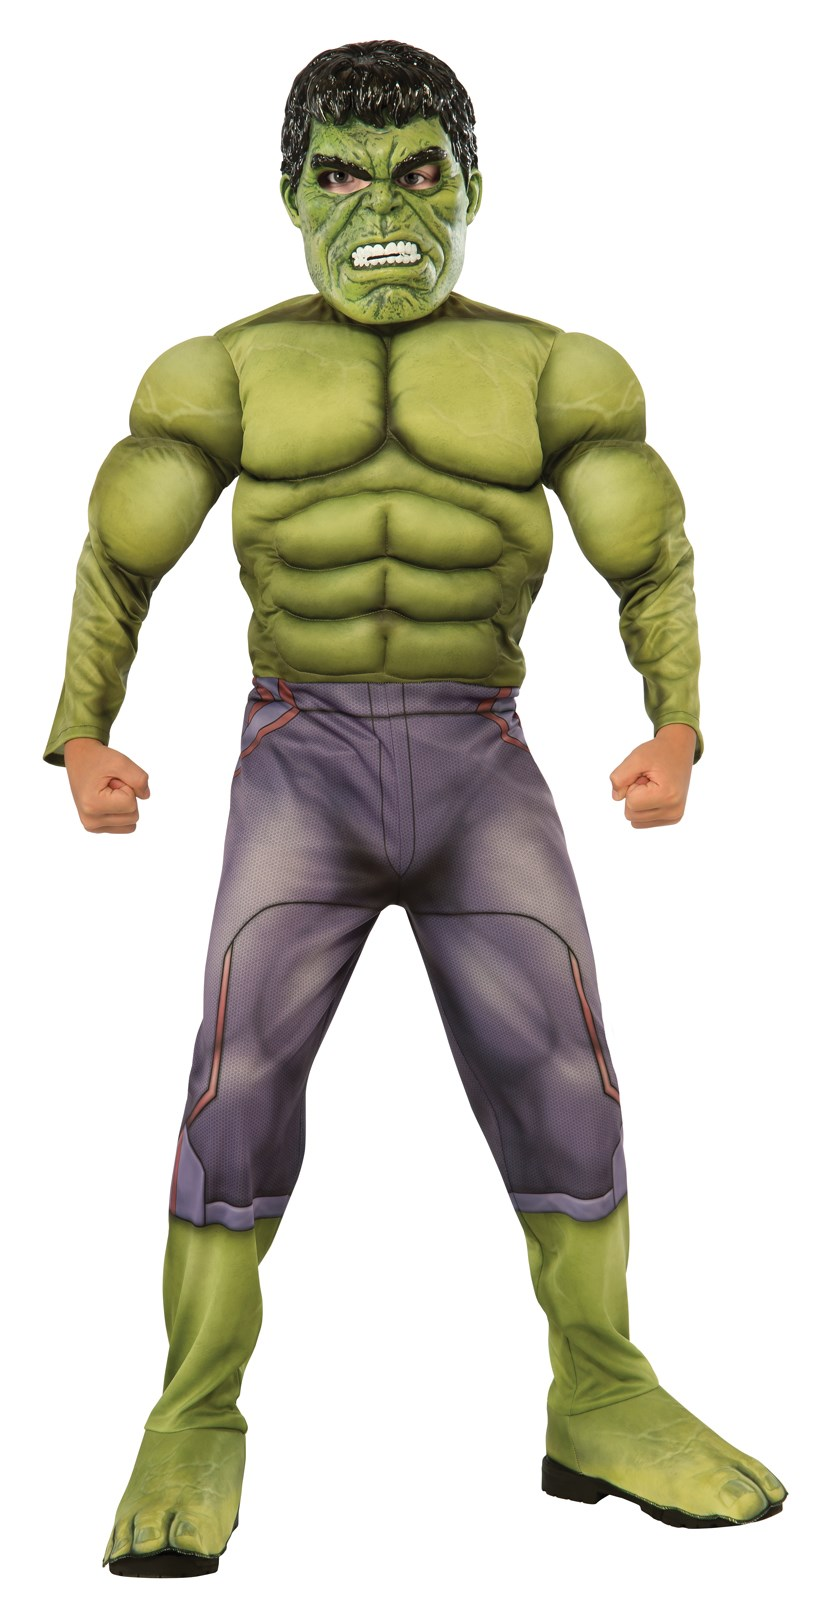 Avengers 2 - Age of Ultron: Deluxe Hulk Costume For Kids Small (4-6)